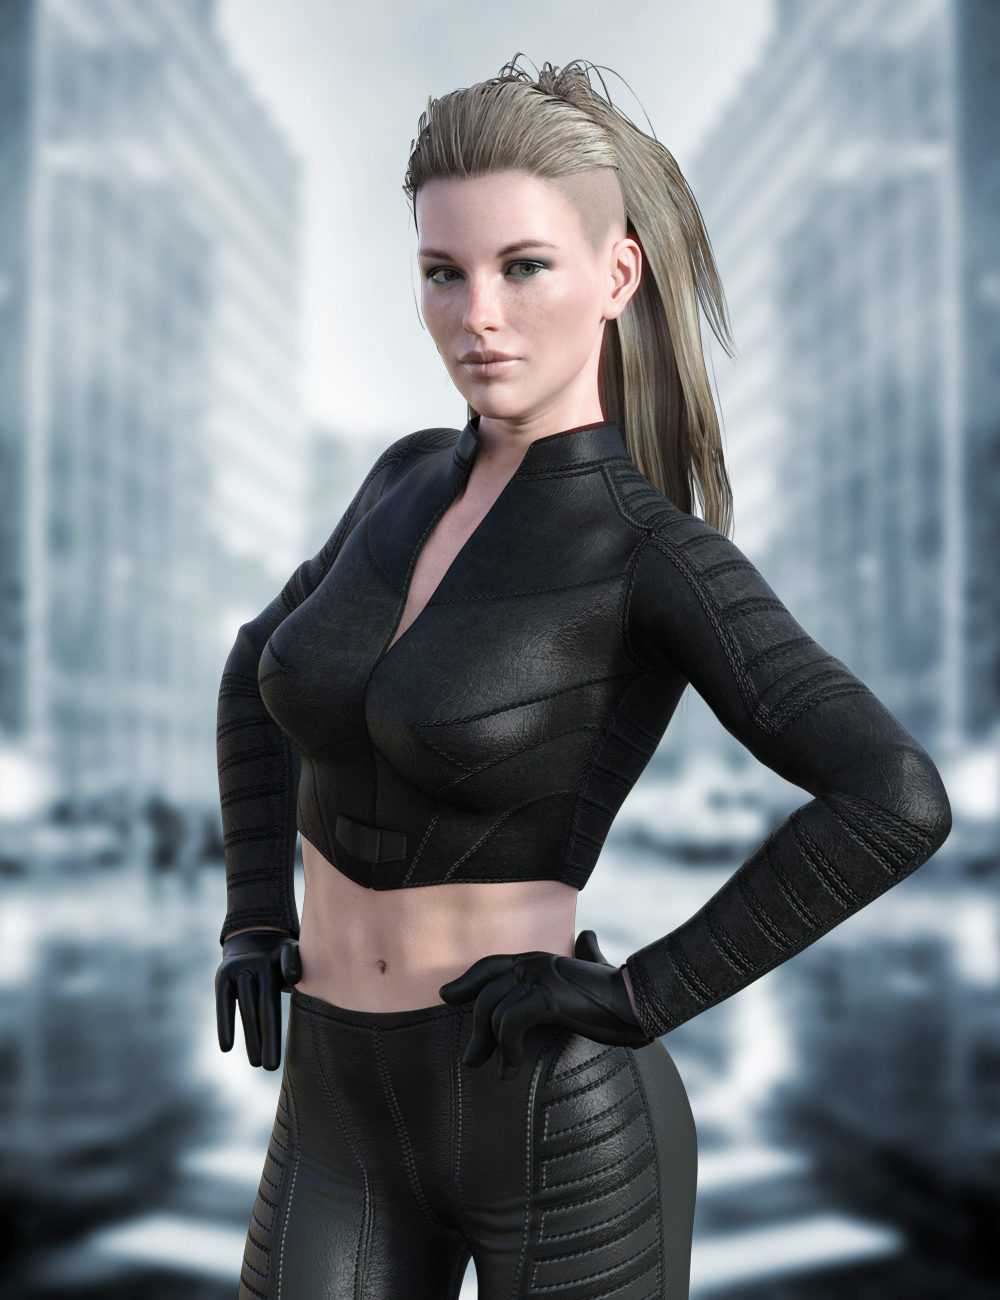 X-Fashion Justice Outfit for Genesis 8 Female(s) by: xtrart-3d, 3D Models by Daz 3D